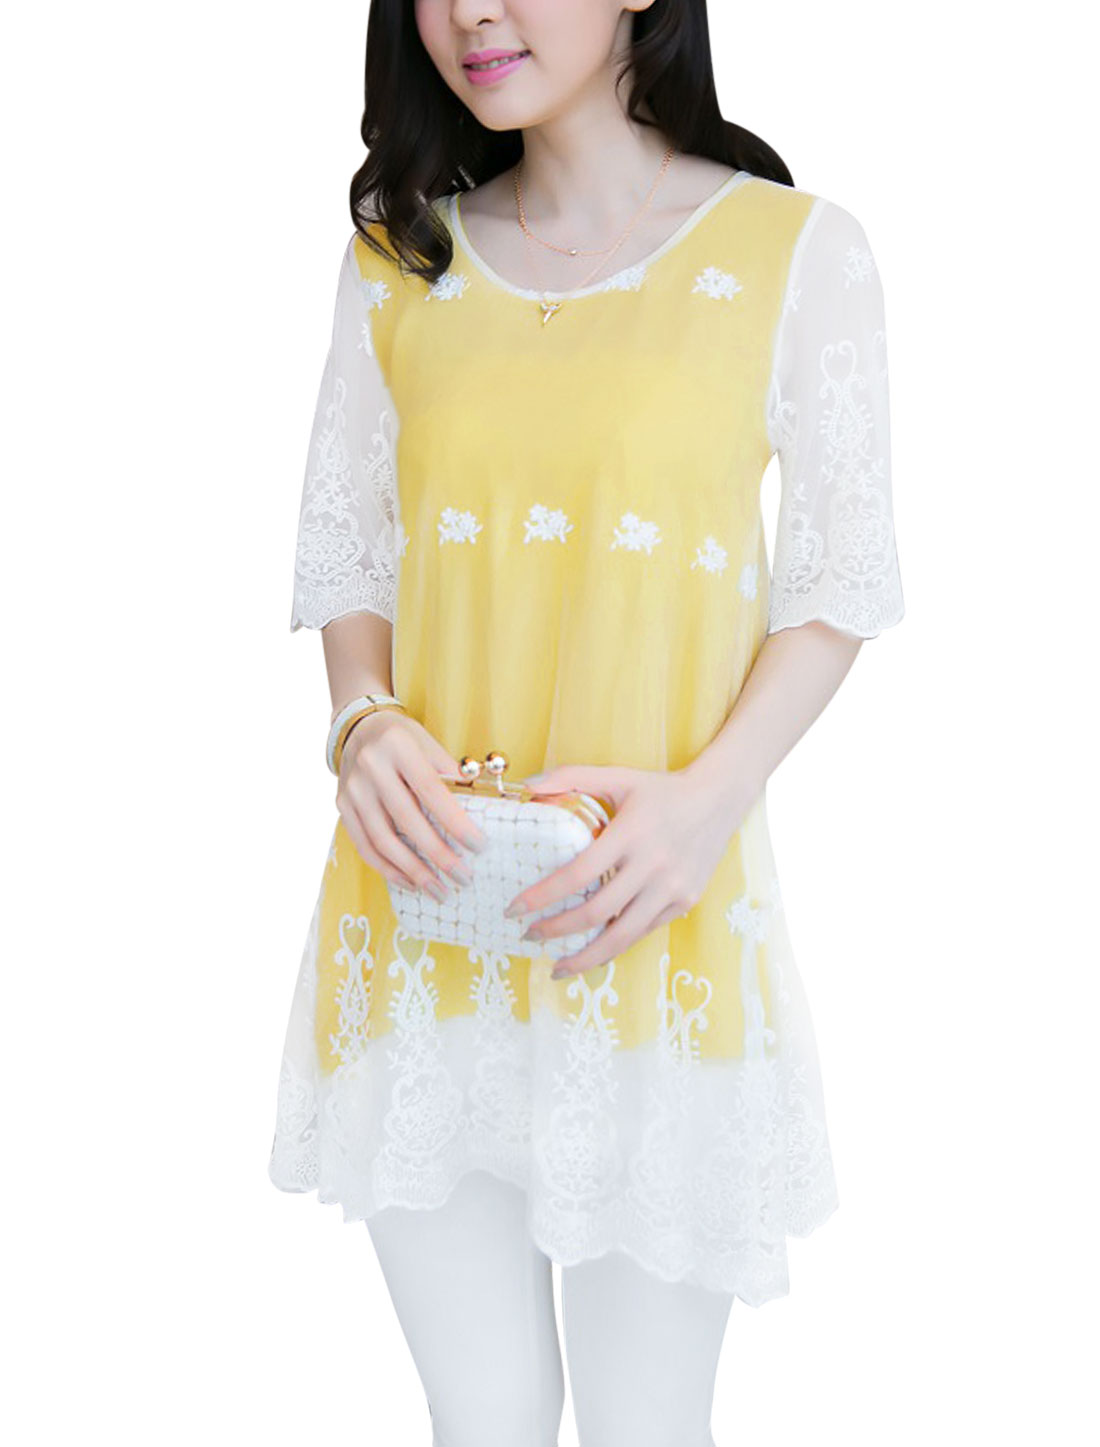 Lady NEW Elbow Sleeve Mesh Overlay Flower Embroidery Tunic Top Yellow S